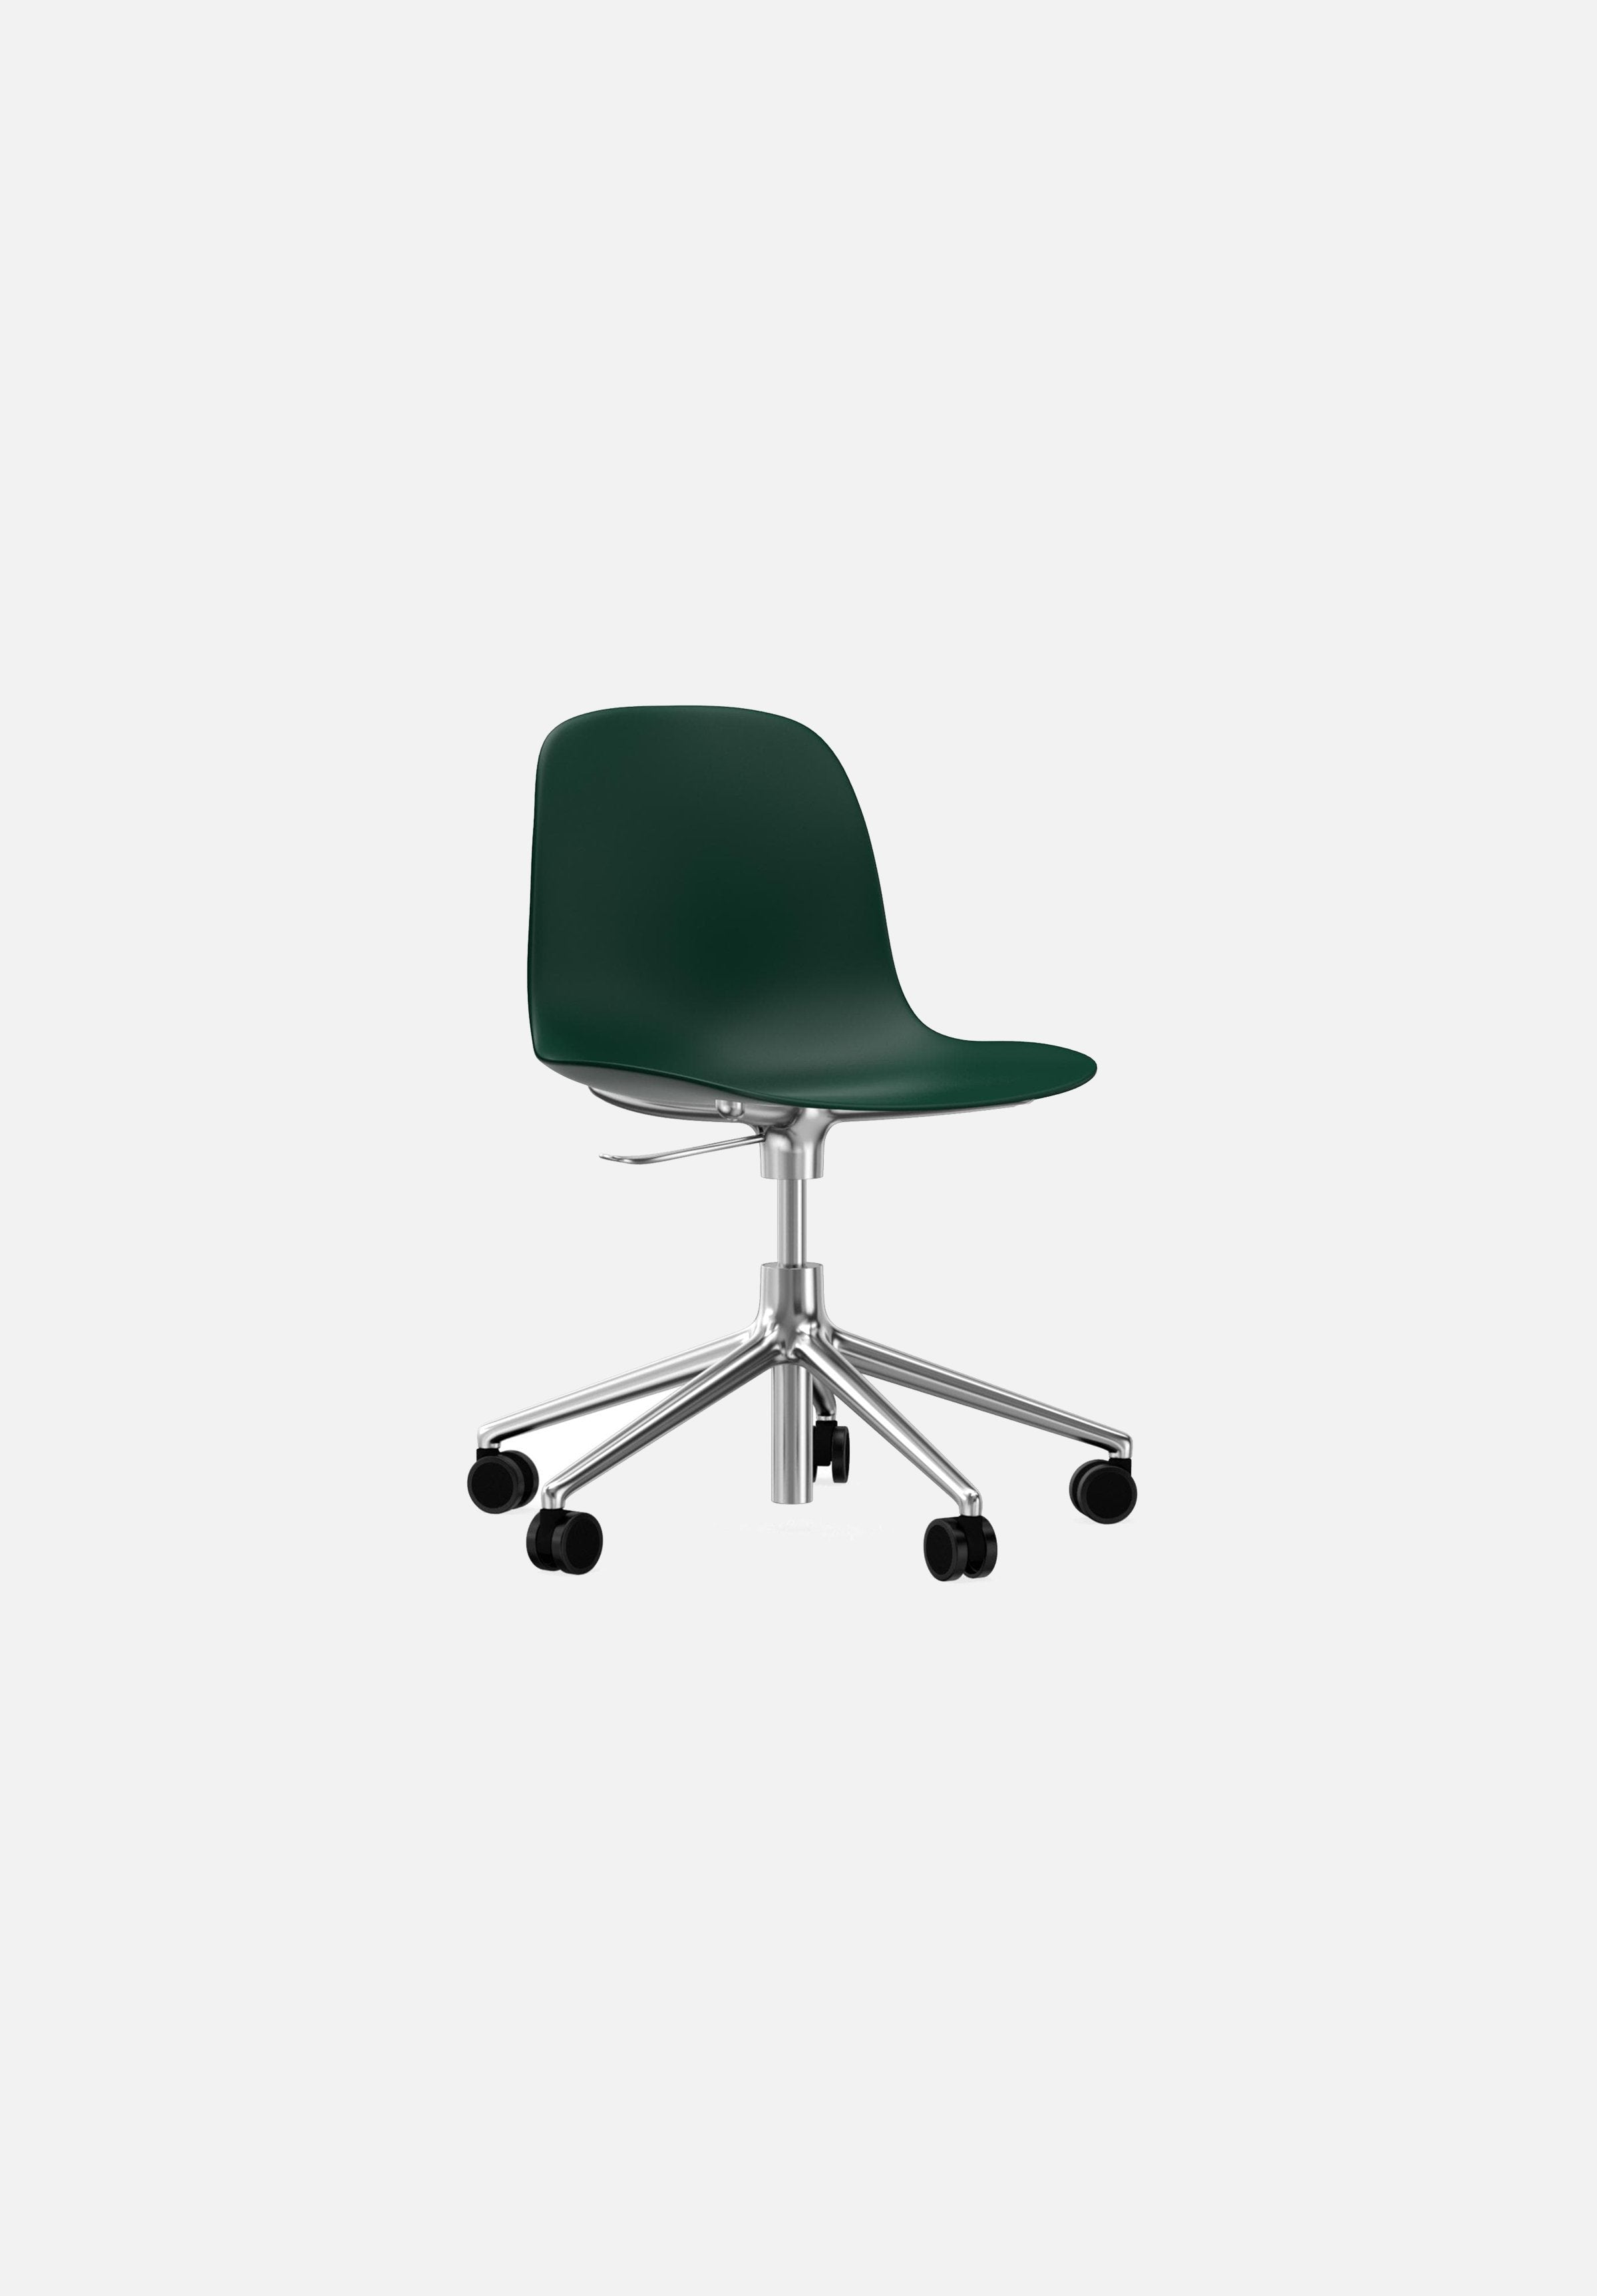 Form Chair — Swivel Gaslift-Simon Legald-Normann Copenhagen-Green-Polished Aluminum-Average-canada-design-store-danish-denmark-furniture-interior